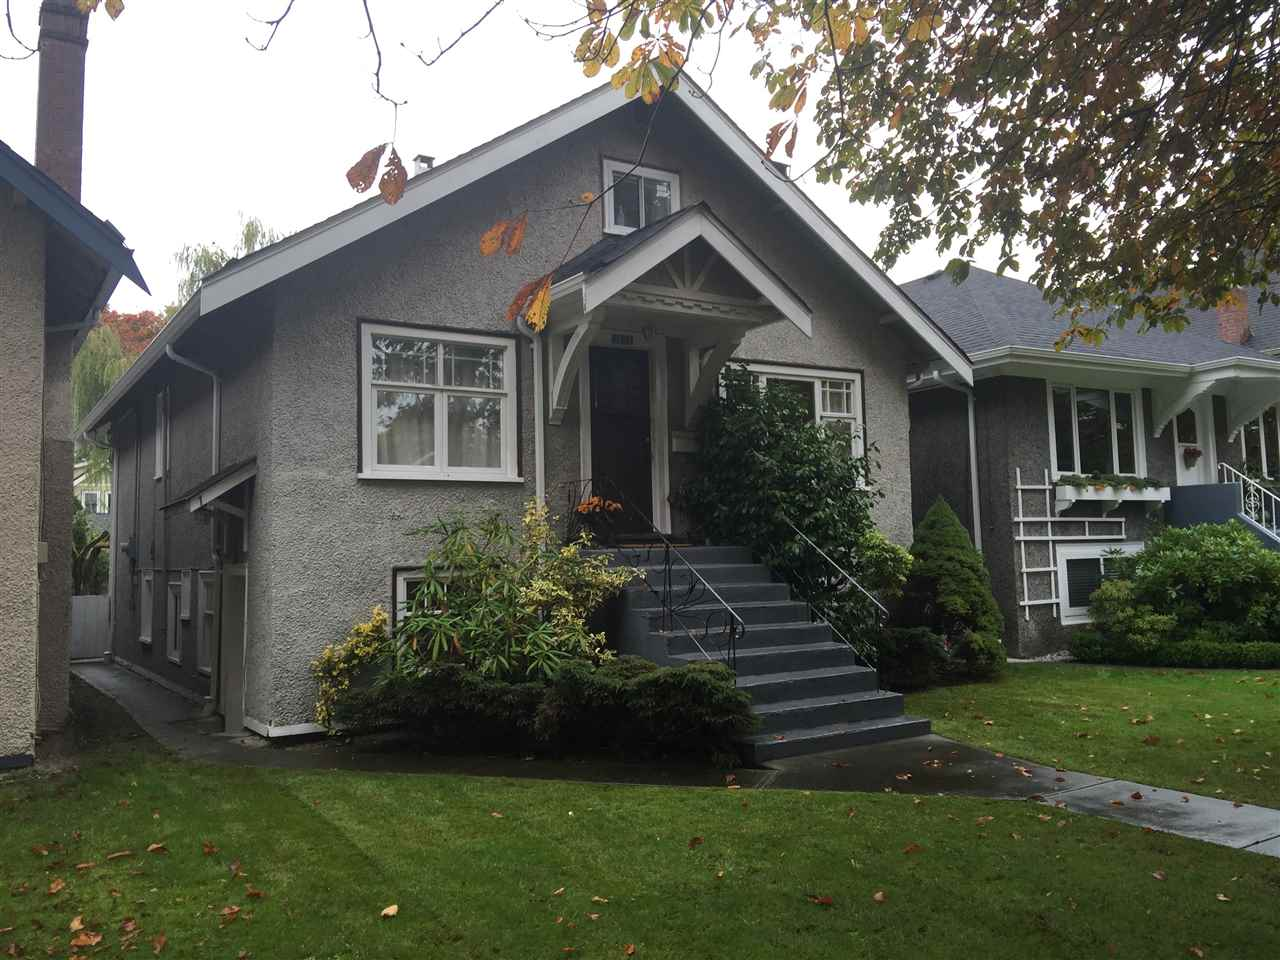 Main Photo: 3233 W 14TH AVENUE in Vancouver: Kitsilano House for sale (Vancouver West)  : MLS® # R2007422